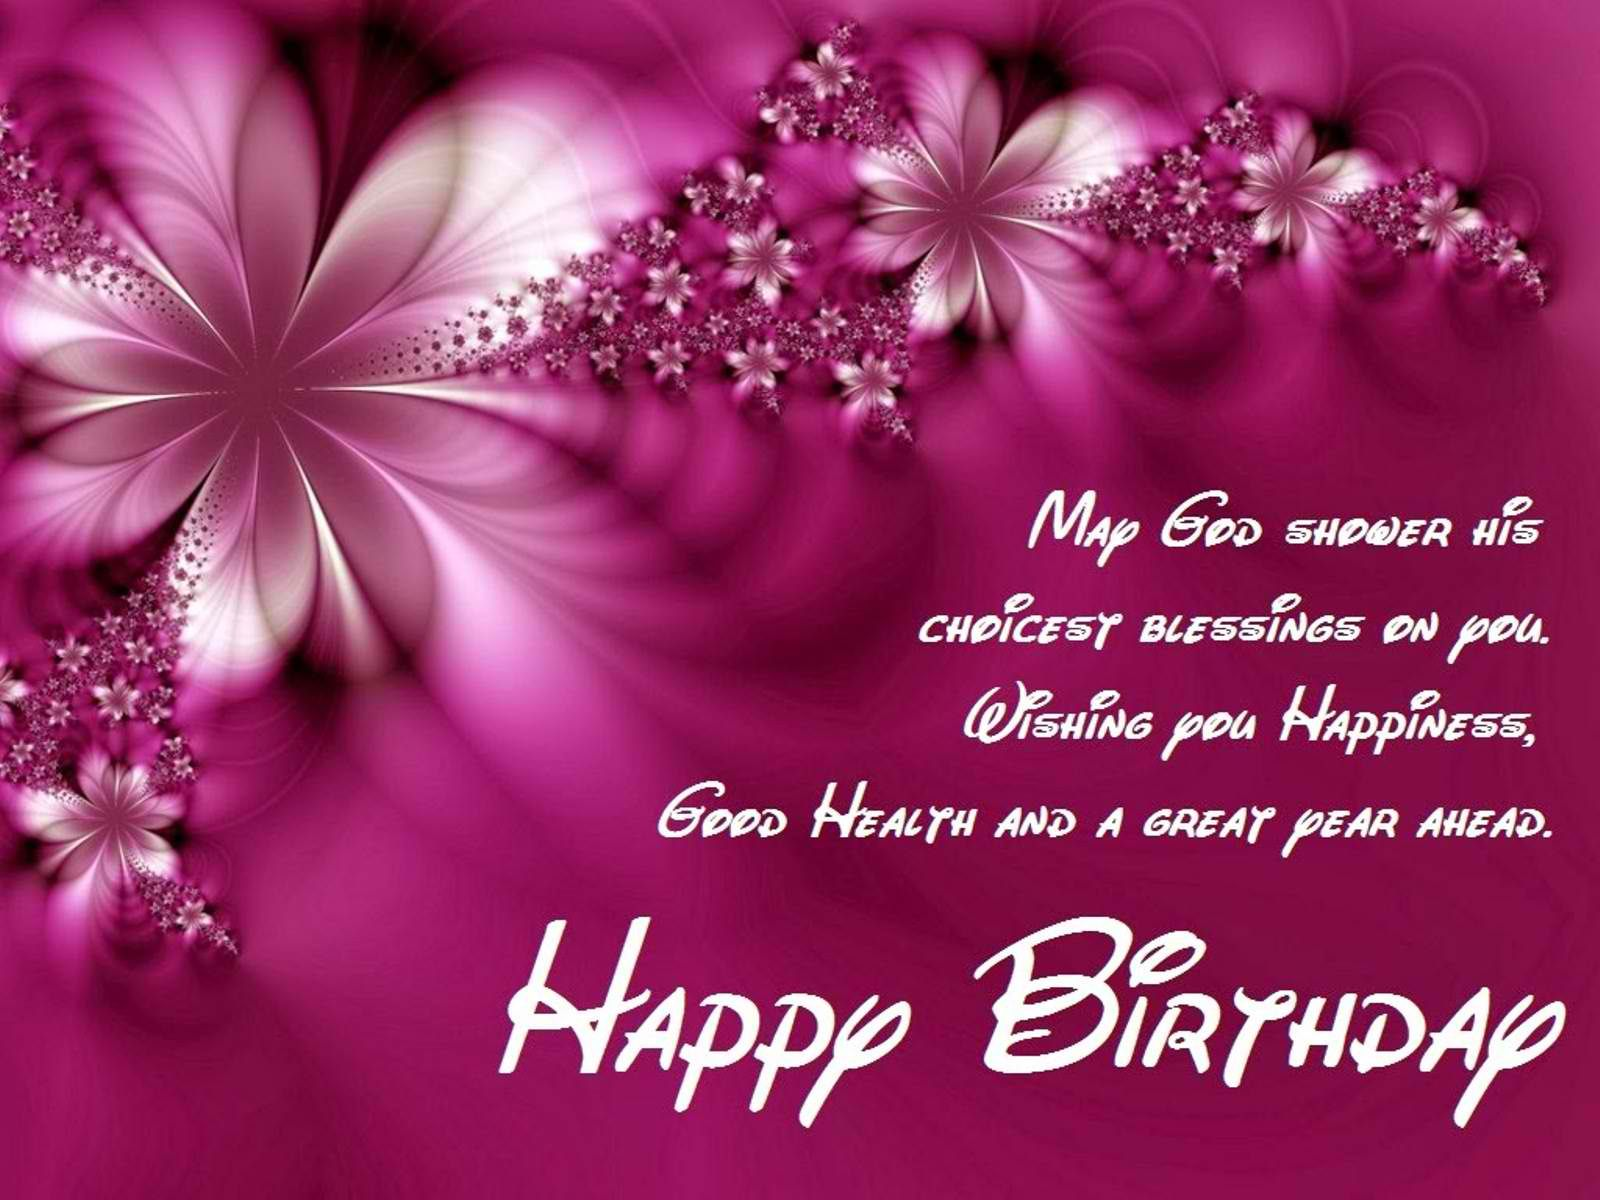 beautiful birthday images download ; 2bb561a201d361075d832aa73e814529